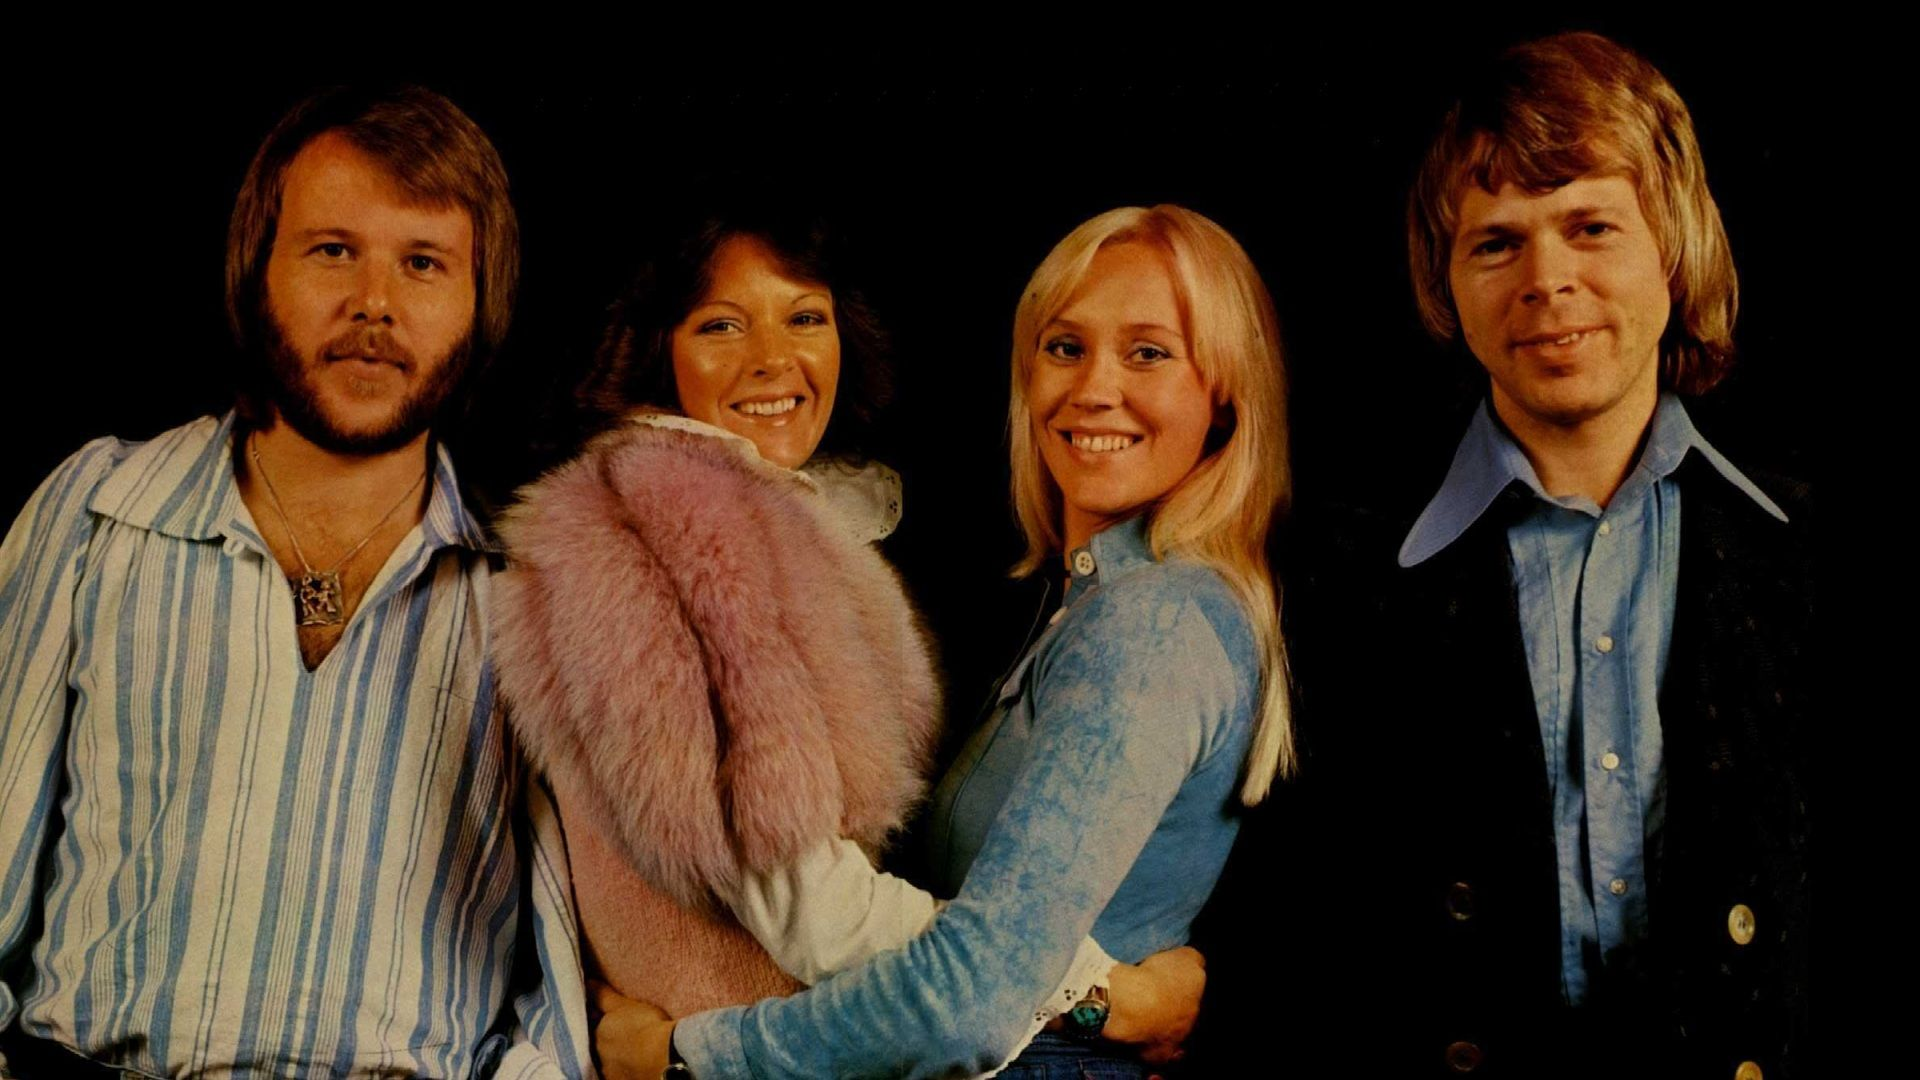 Abba Abba Band Member Dies 2017 Music Group Abba Coat Fur